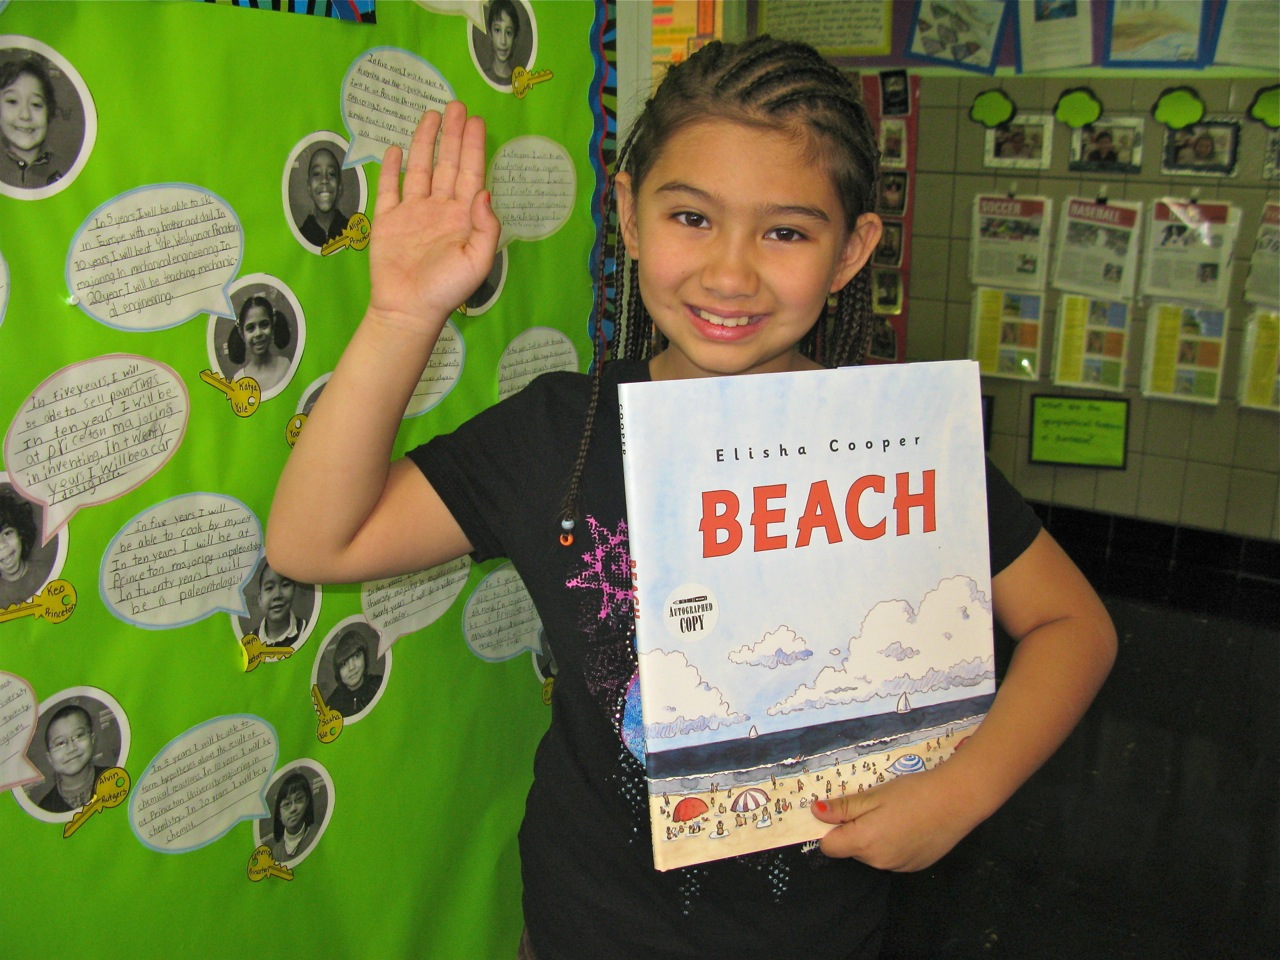 Five Ways to Celebrate Summer Reading